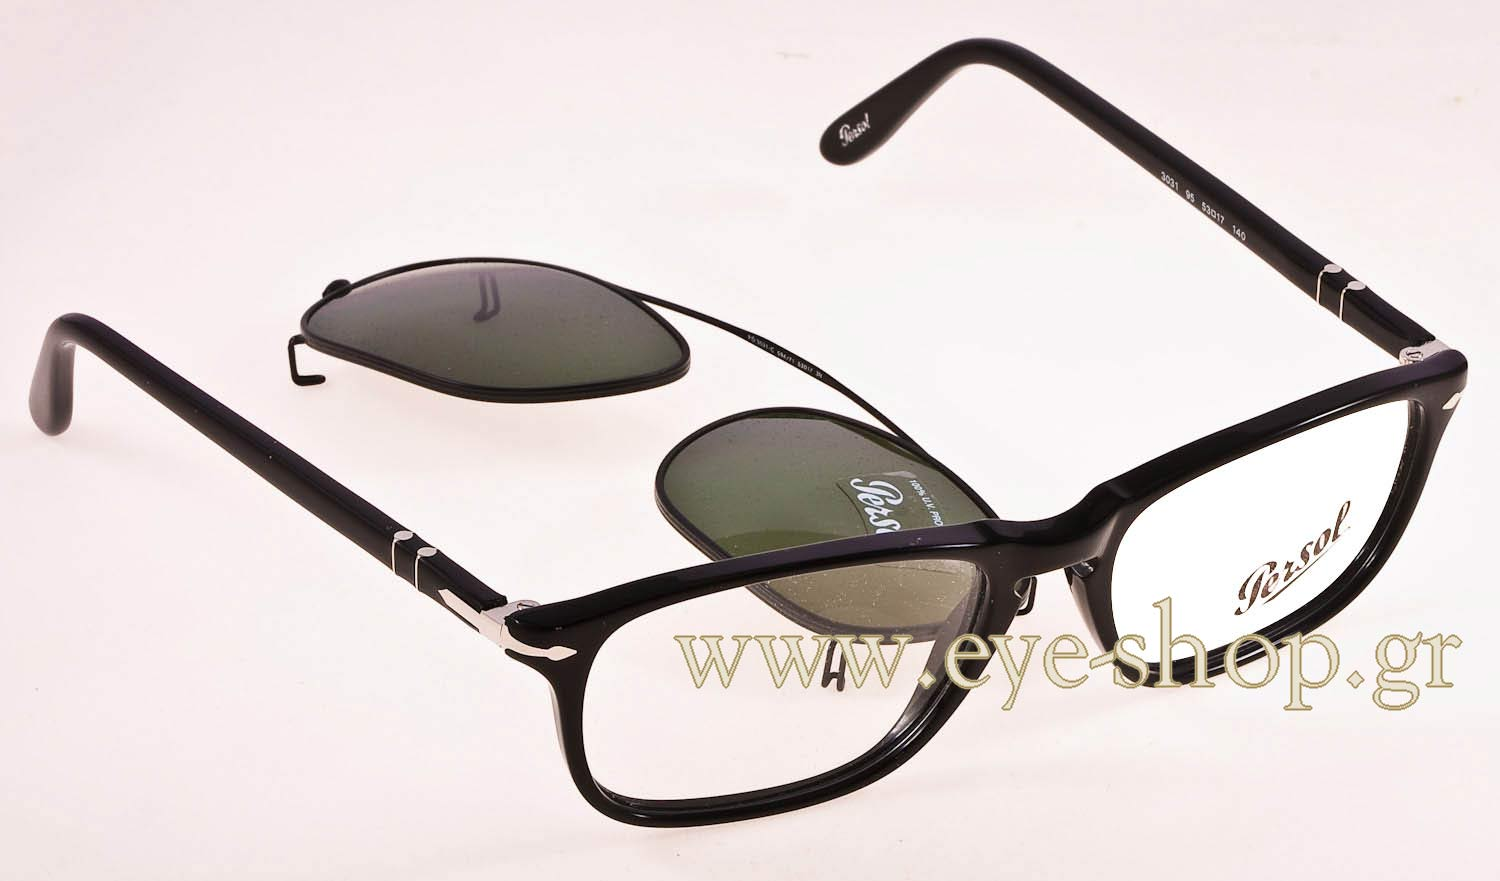 473162db13 Enlarge Colors OutOfStock · Glasses Persol 3031 95 ...